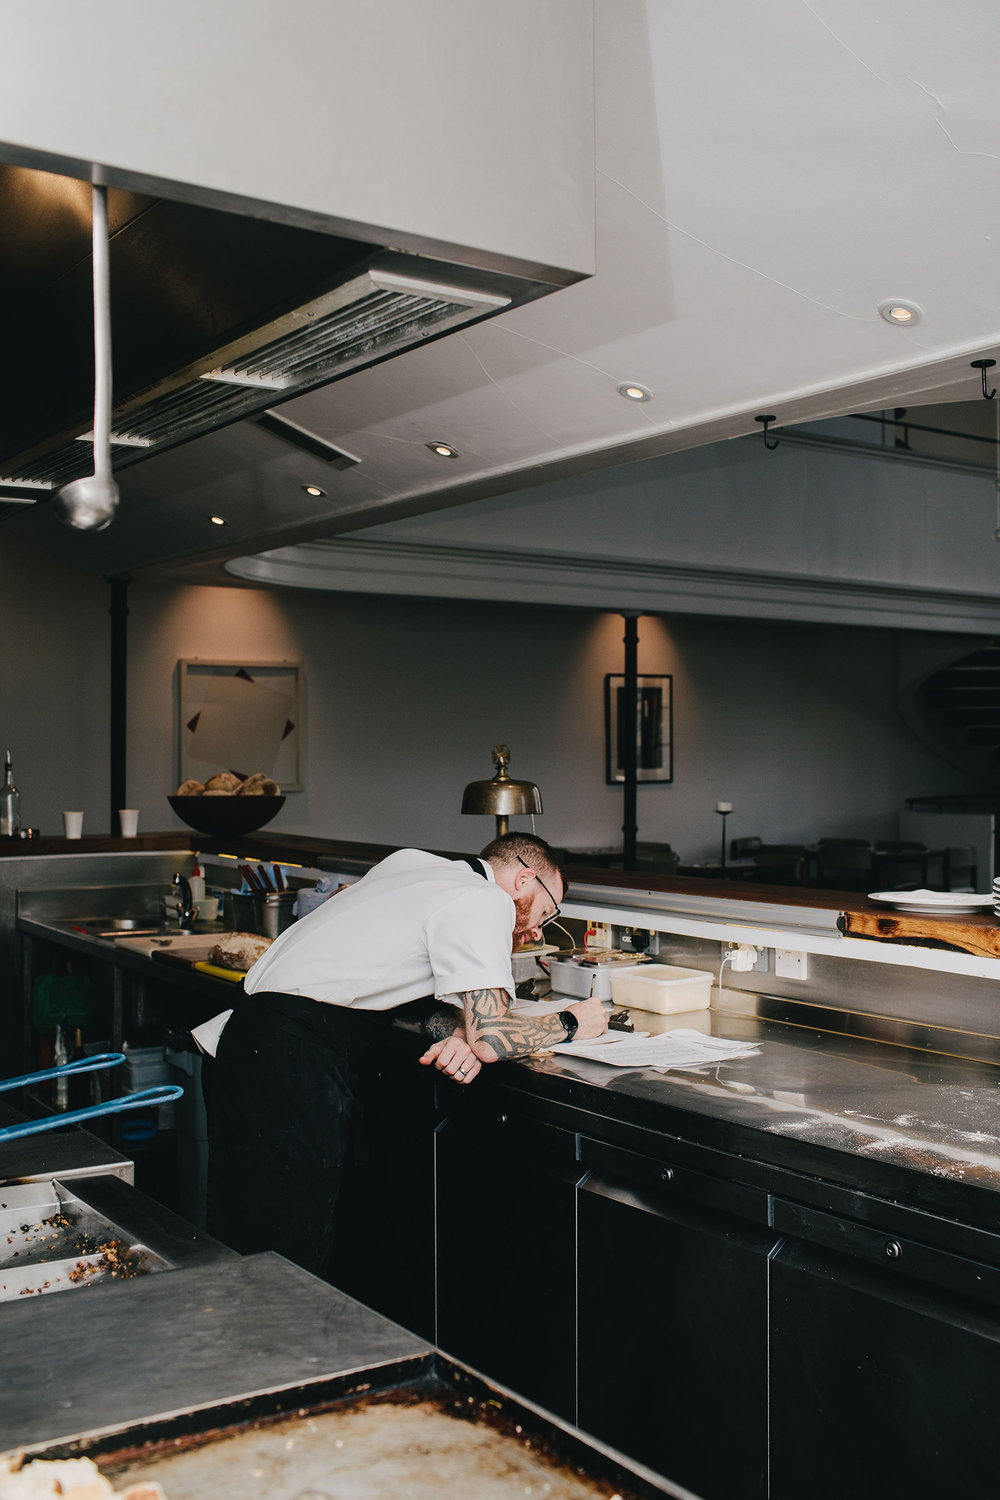 Head chef Daniel Starnes at work in his kitchen